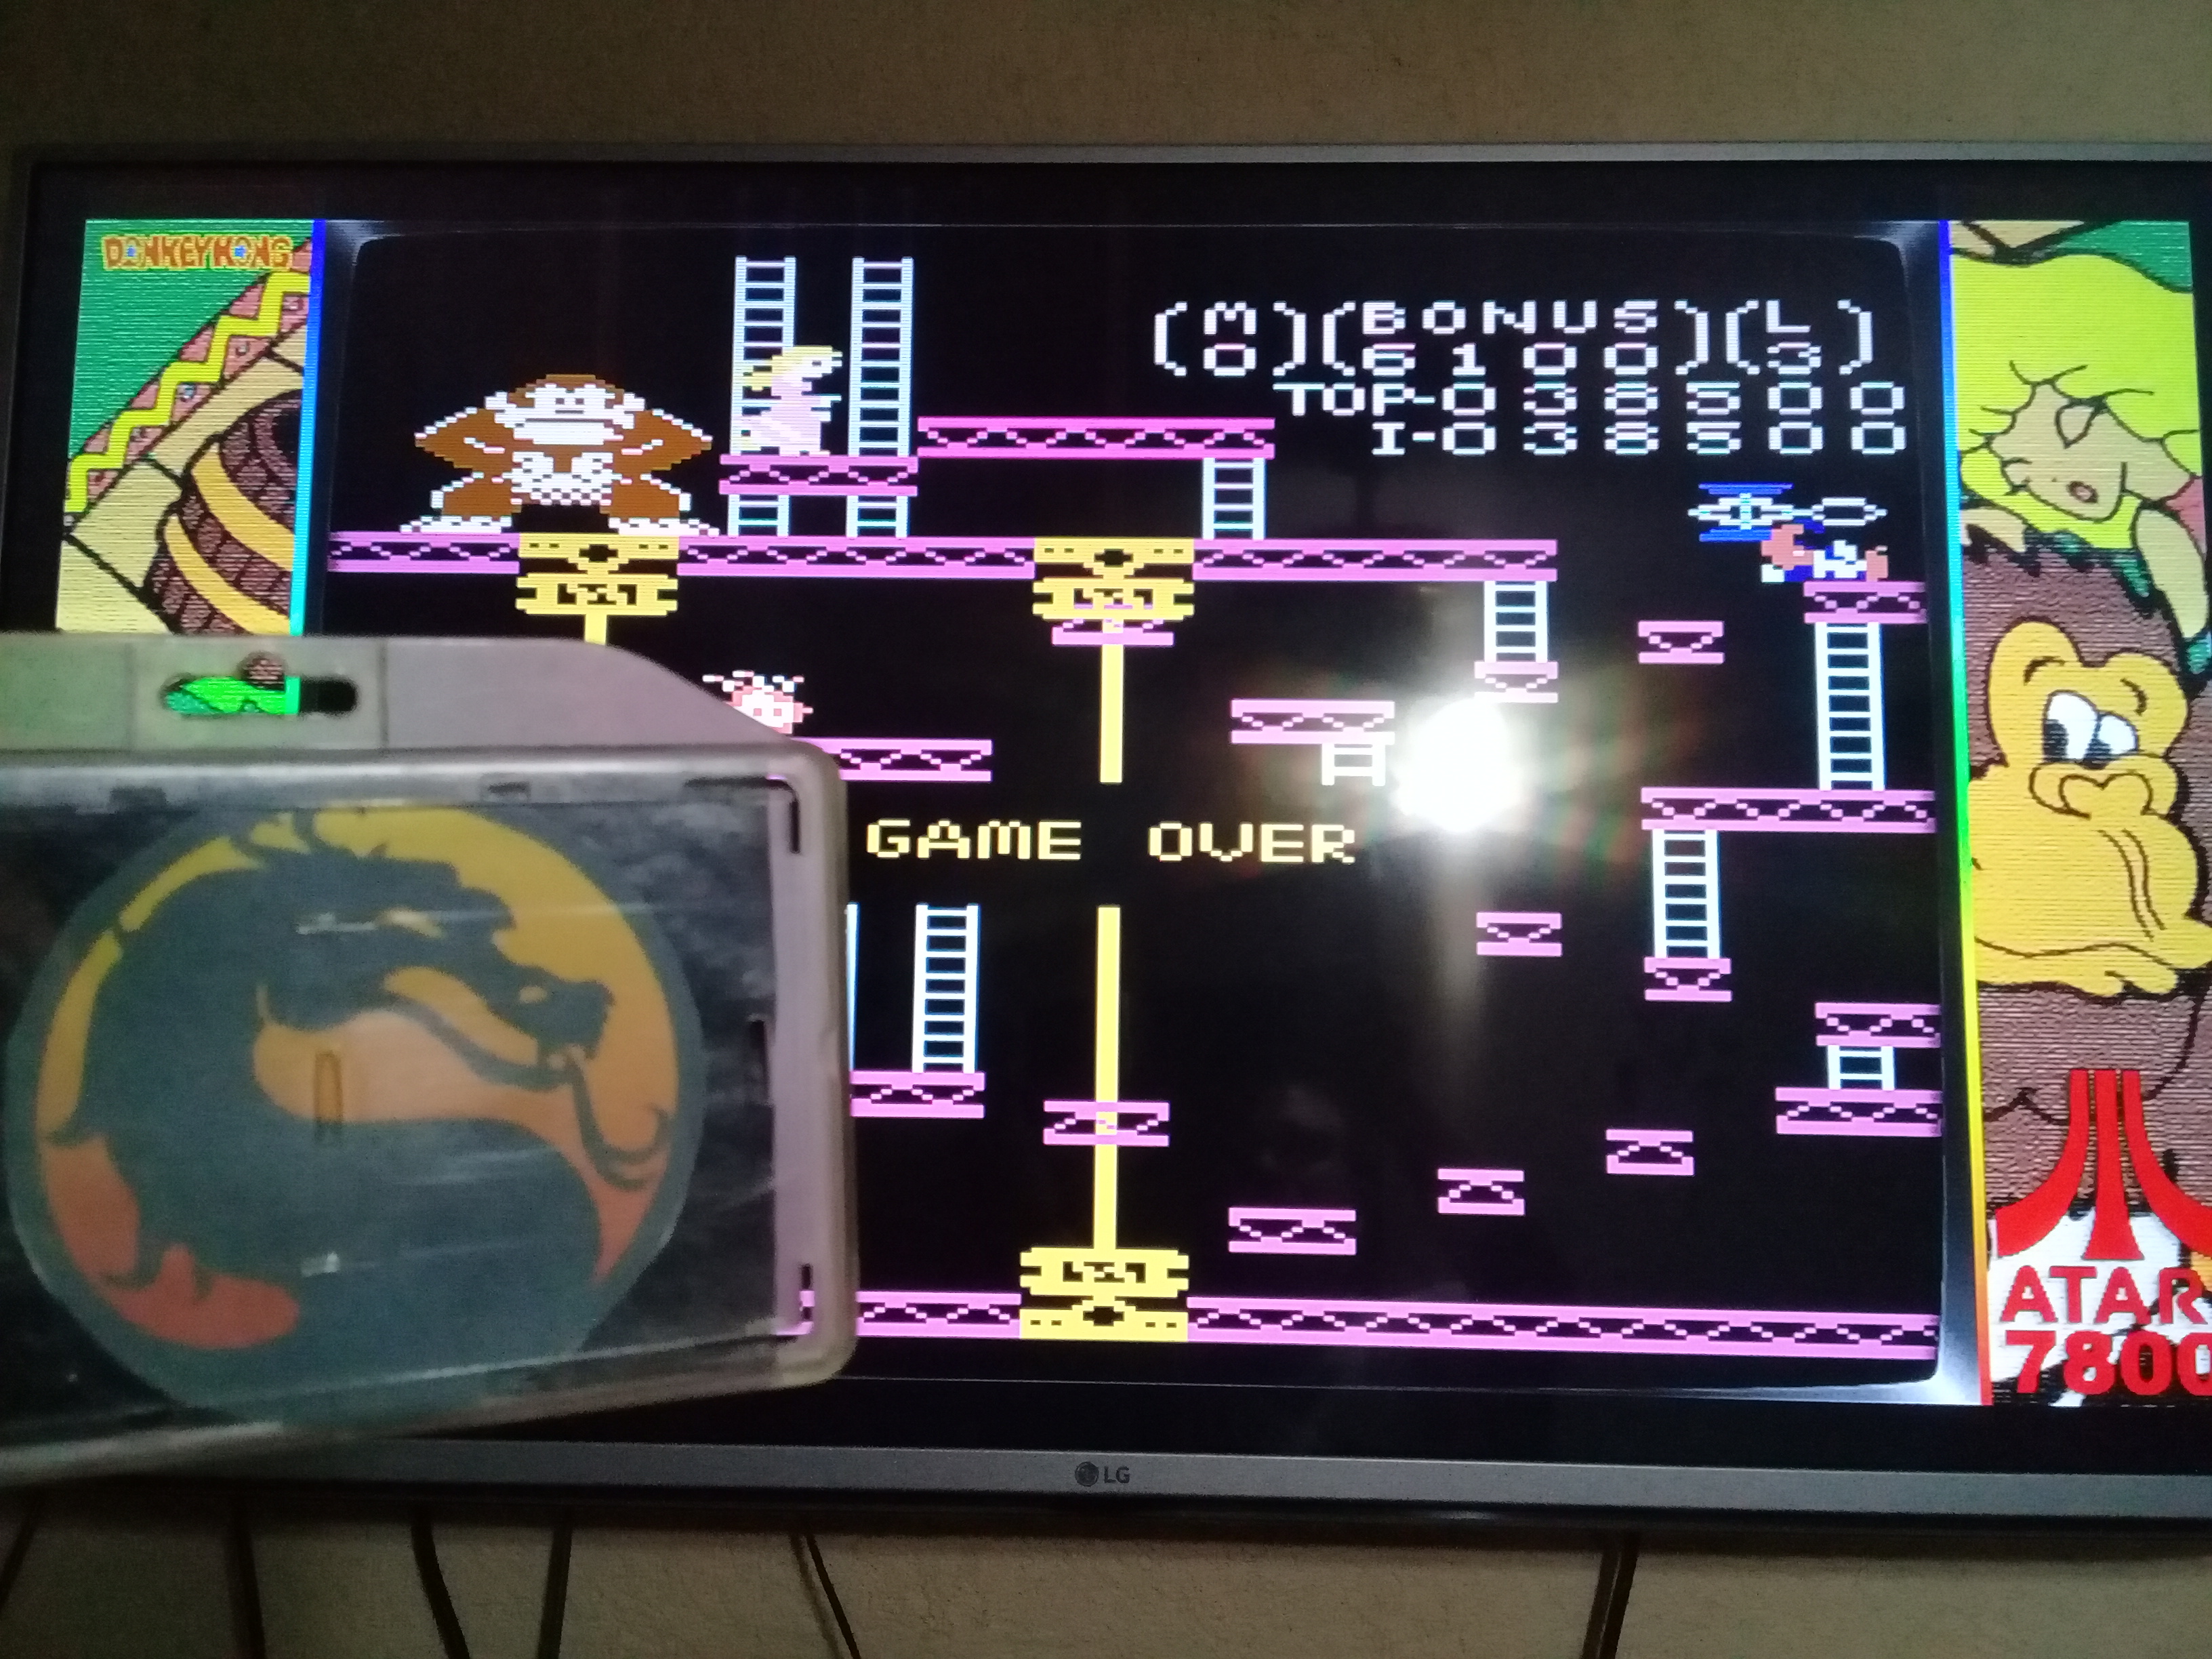 omargeddon: Donkey Kong: Advanced (Atari 7800 Emulated) 38,500 points on 2020-06-20 19:57:33